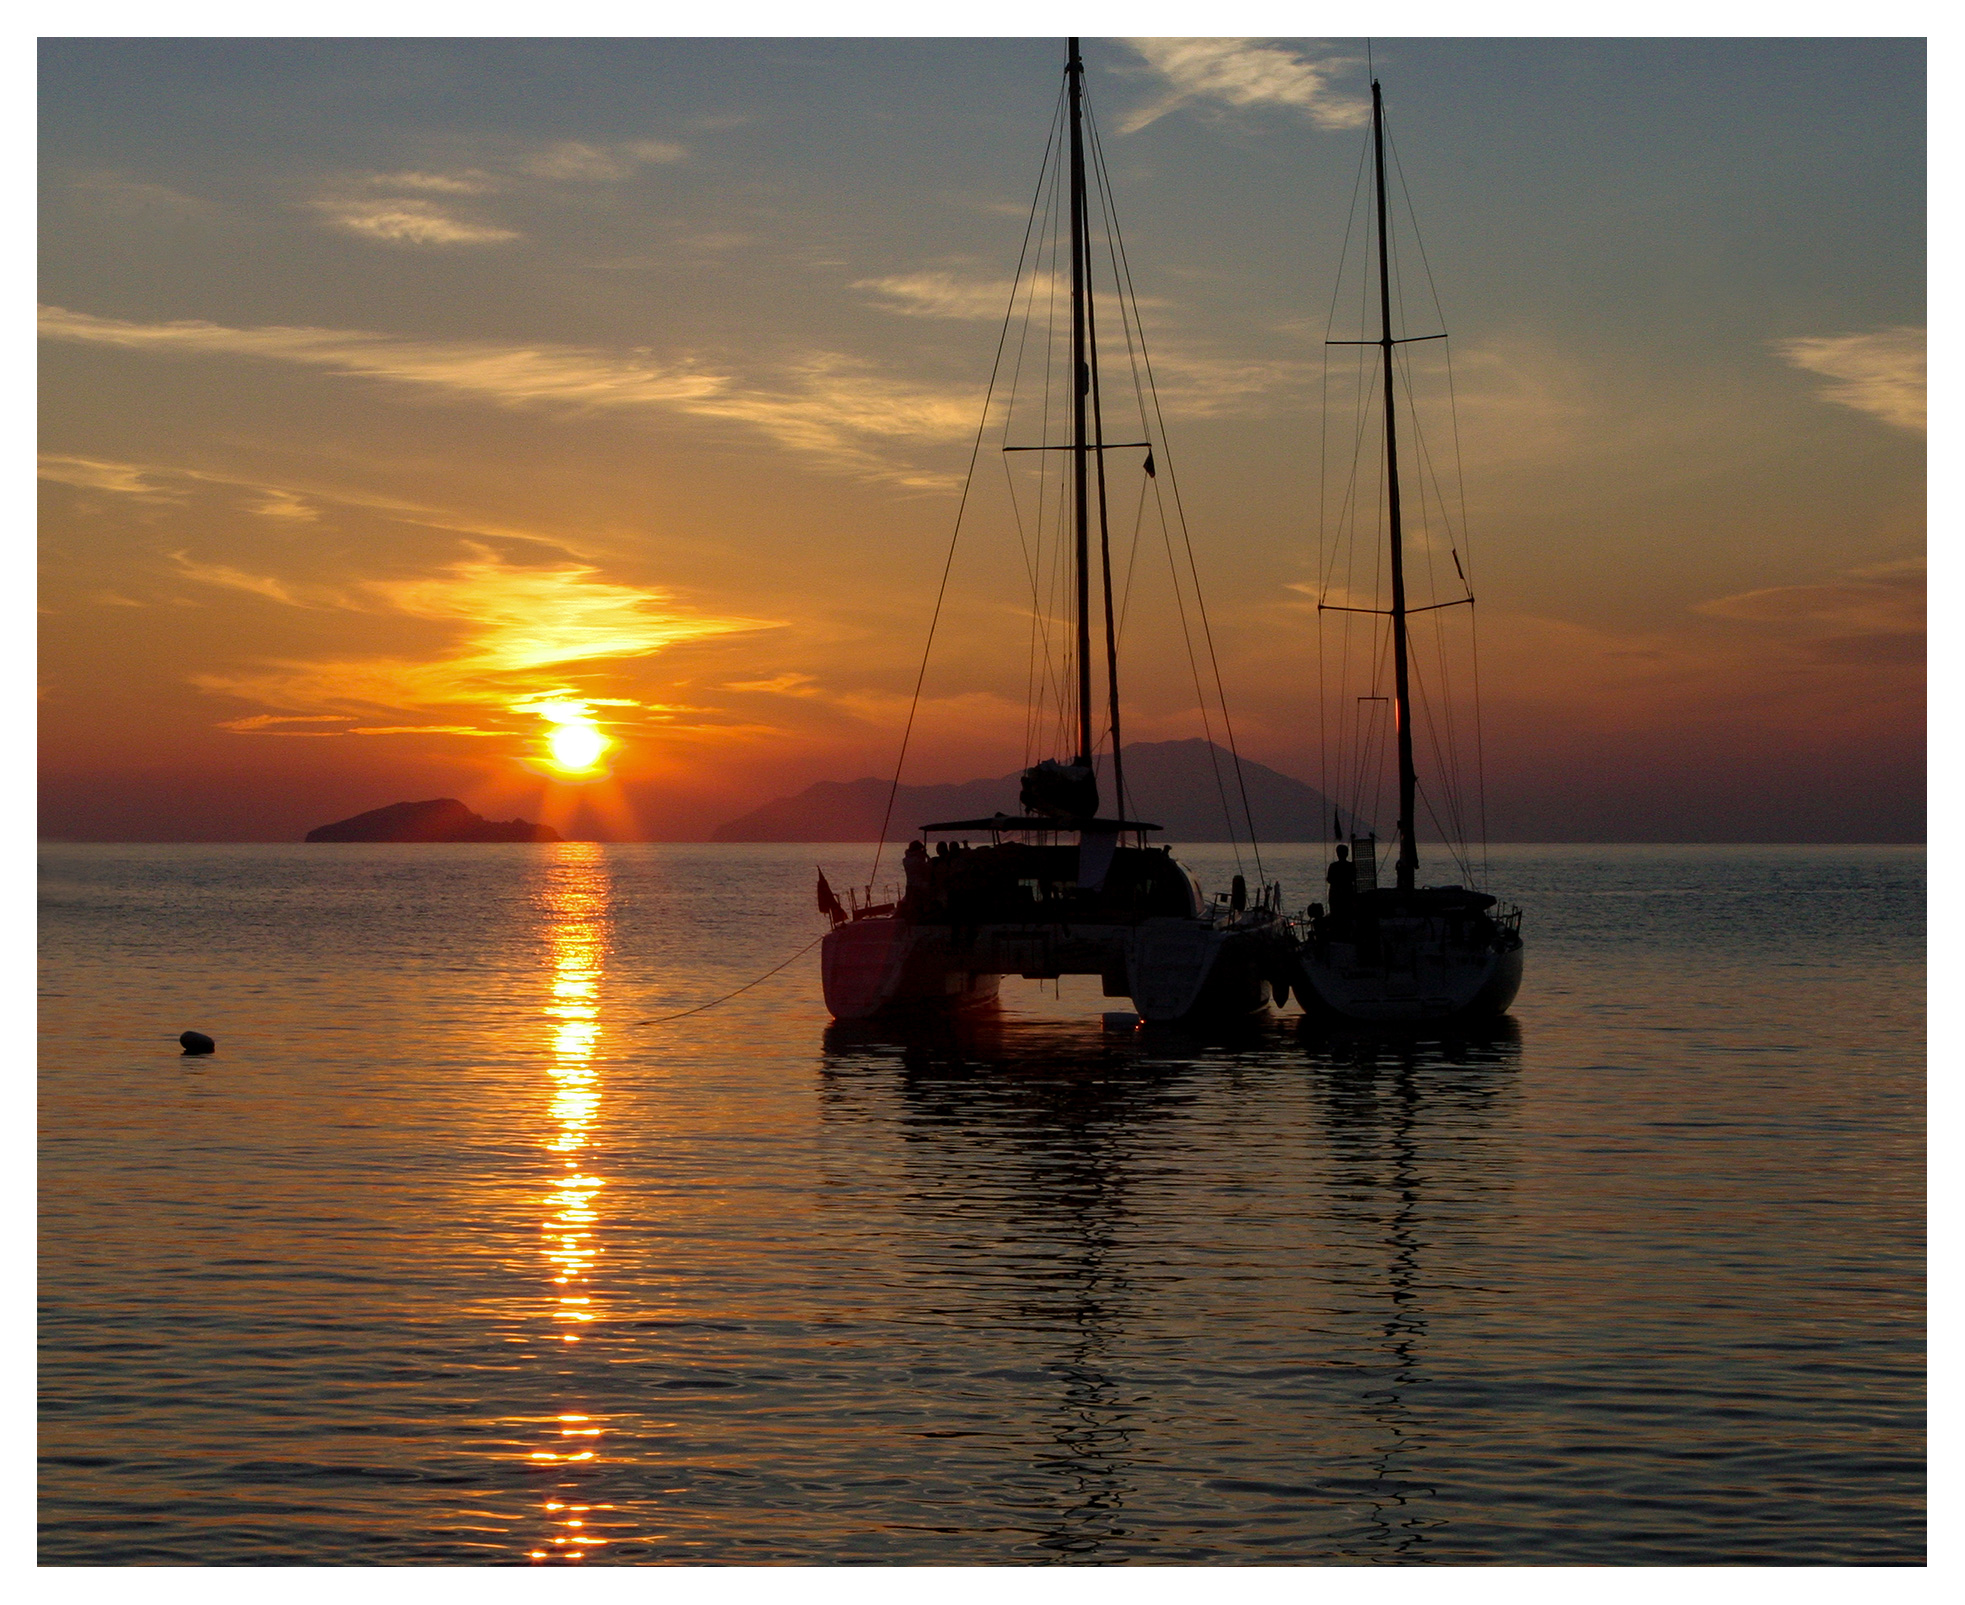 Yachting photography: Monohull and catamaran anchored together in a glorious sunset near cape Sounio, Greece